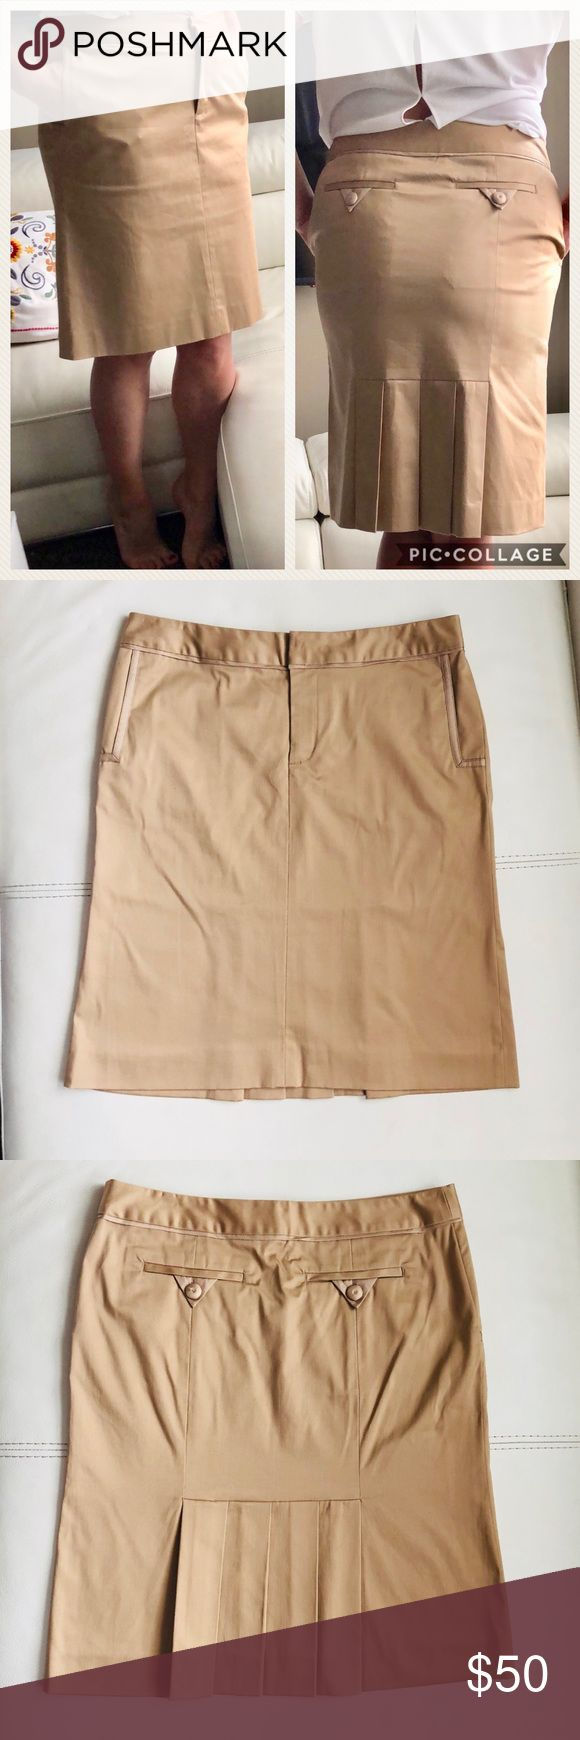 """MARC JACOBS Skirt Marc Jacobs Skirt  Color: tan/ beige Size 10 Waist 16.5"""" Length 23"""" Very comfy, 4 real pockets (2 front - 2 back)  Flattering back pleats! Body: 98% cotton 2%lycra  Lining: 100% polyester Trim: 100% silk  A lot of attention to details. Very comfy and perfect for a work day! Marc Jacobs Skirts"""